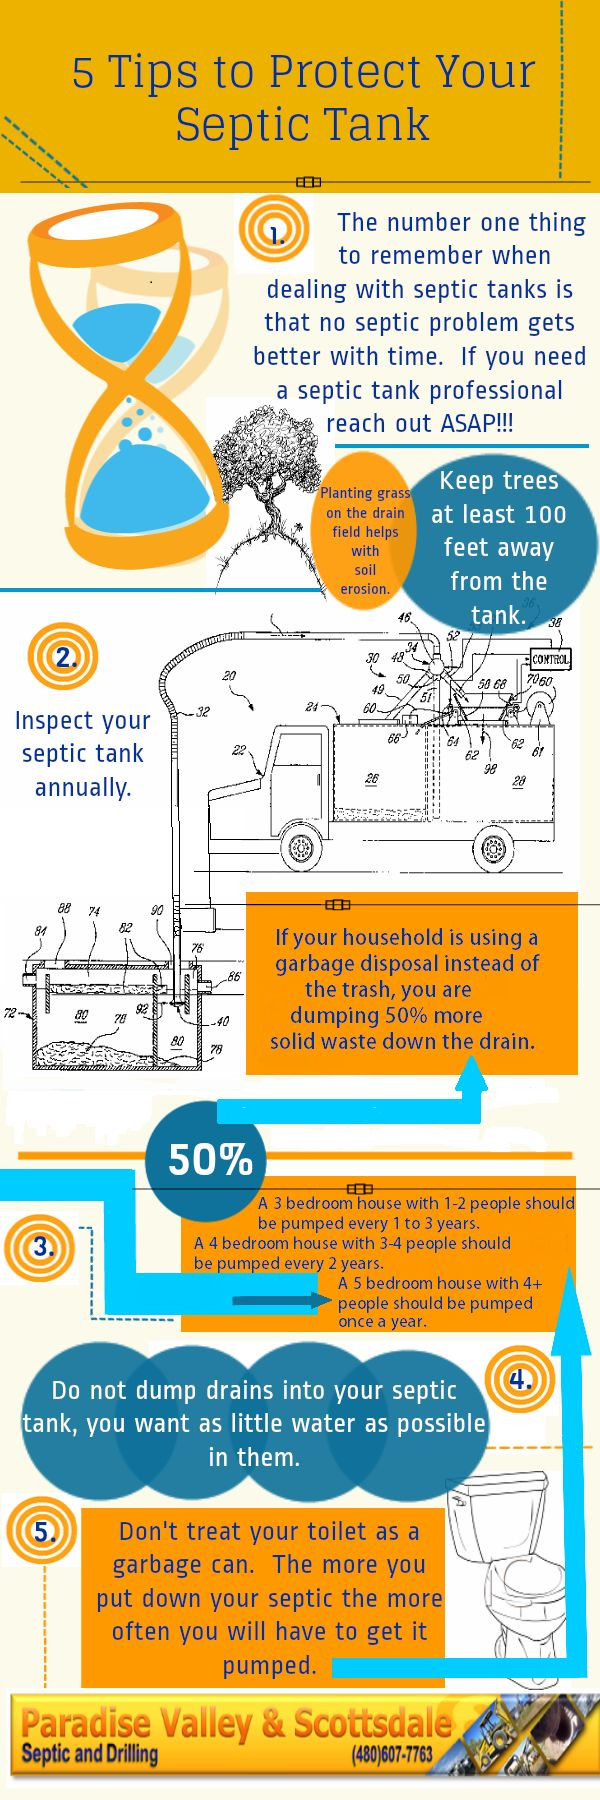 5 Tips to Protect Your Arizona Septic Tank with Infographic